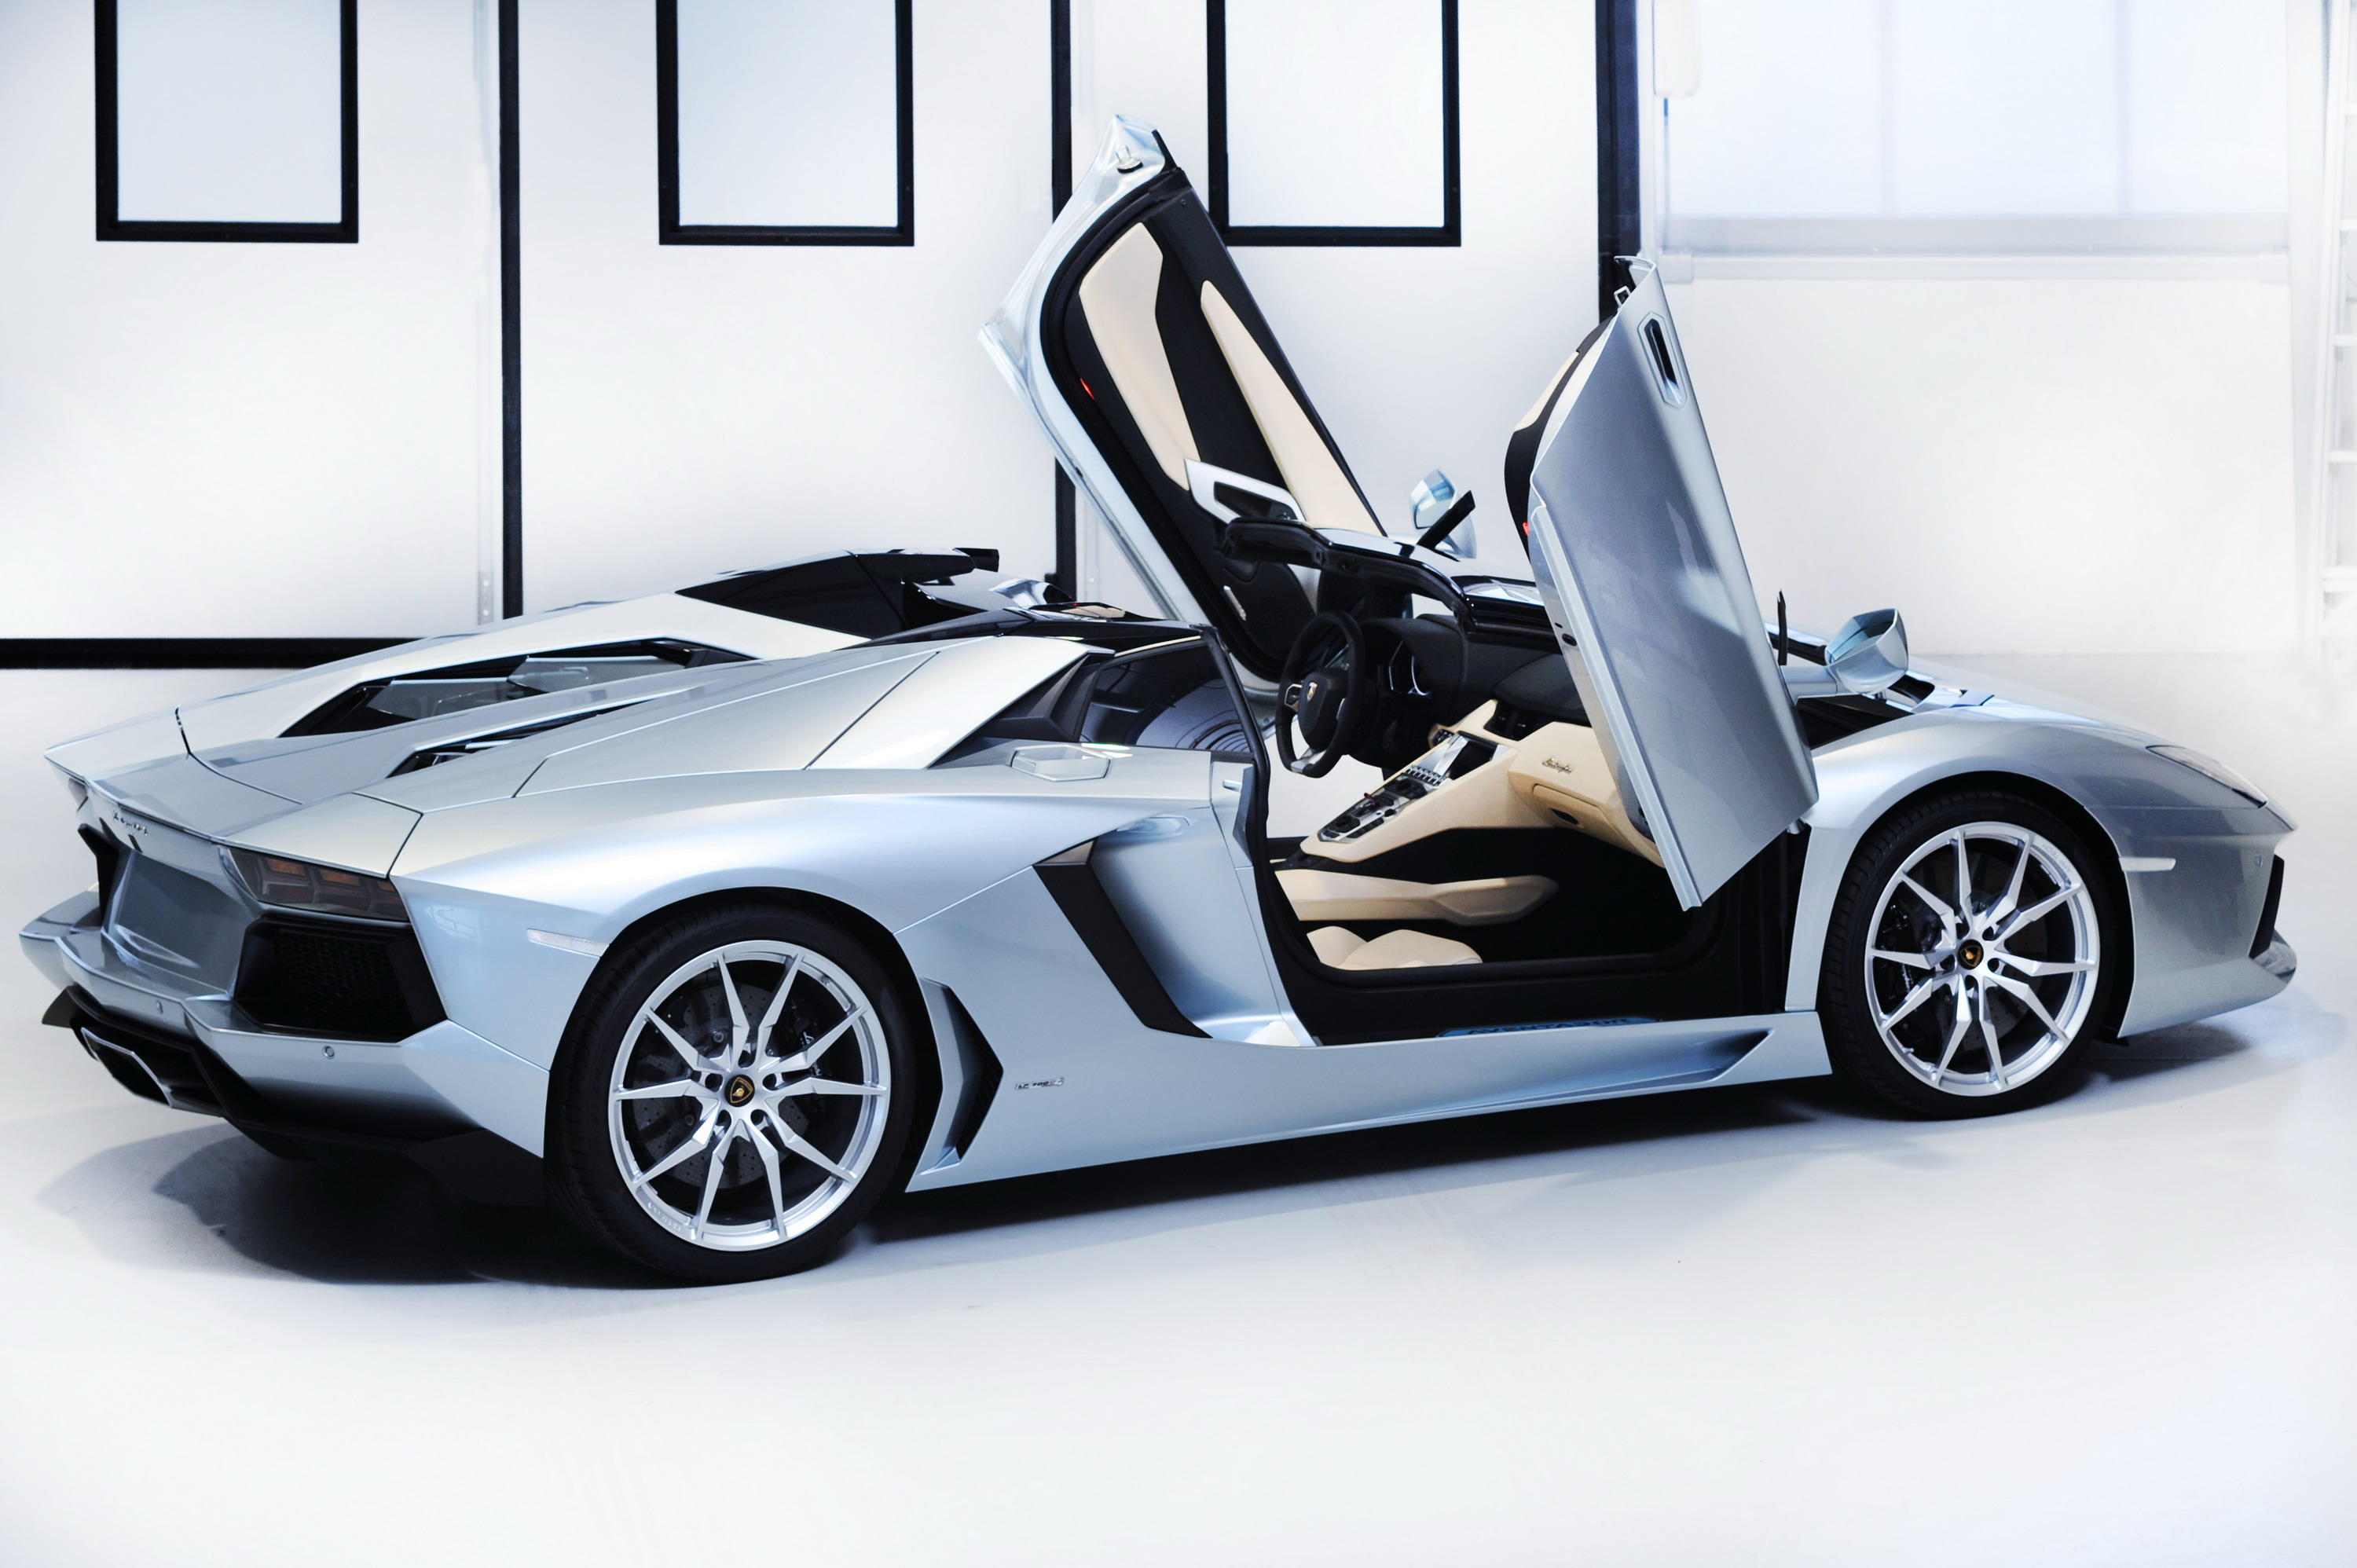 as promised today is the day that lamborghini has dropped the official details on the new aventador lp700 4 roadster the model has been described as the